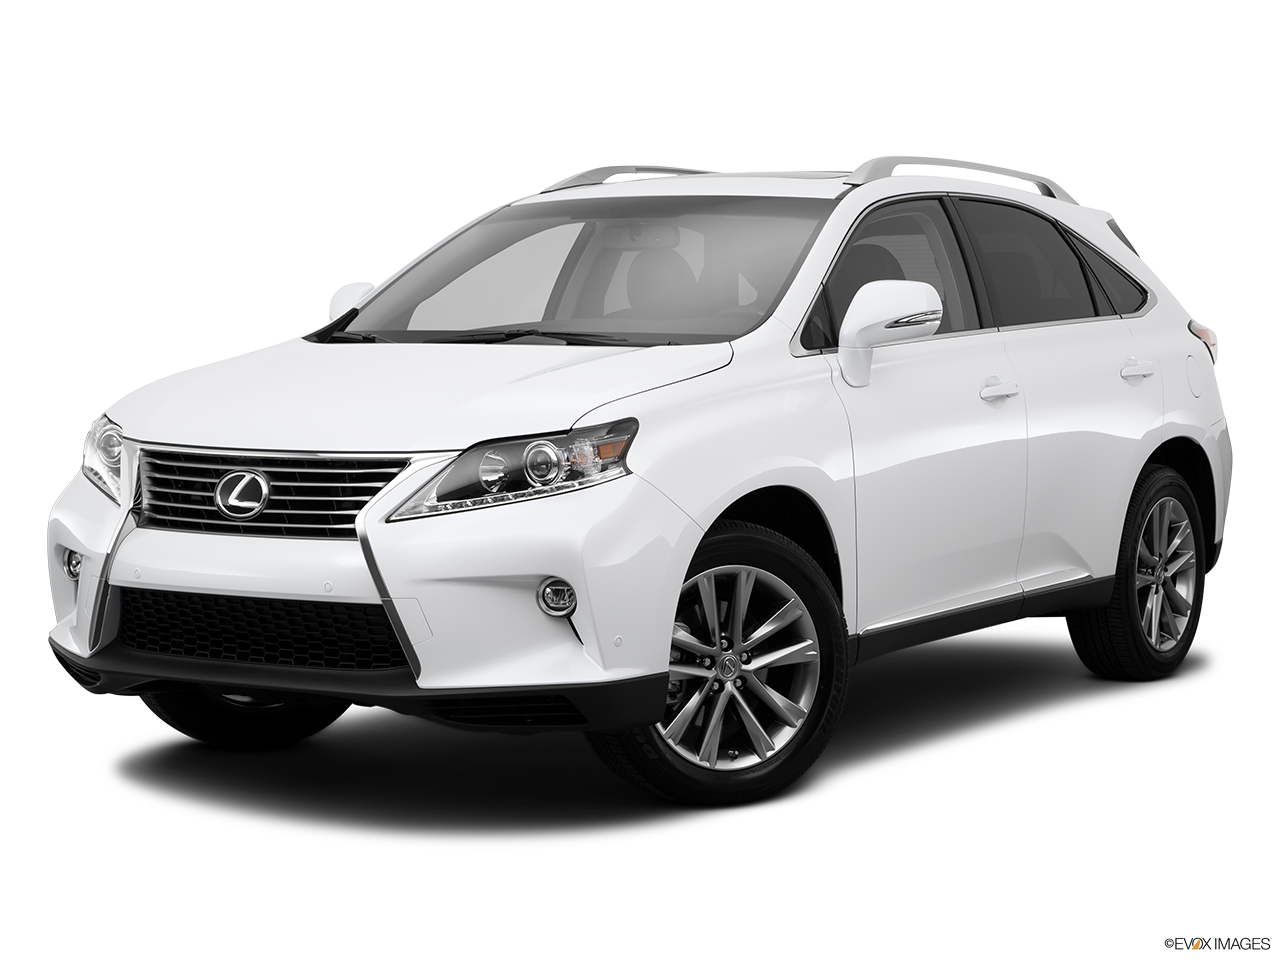 2015 lexus rx dealer serving los angeles lexus of woodland hills. Black Bedroom Furniture Sets. Home Design Ideas